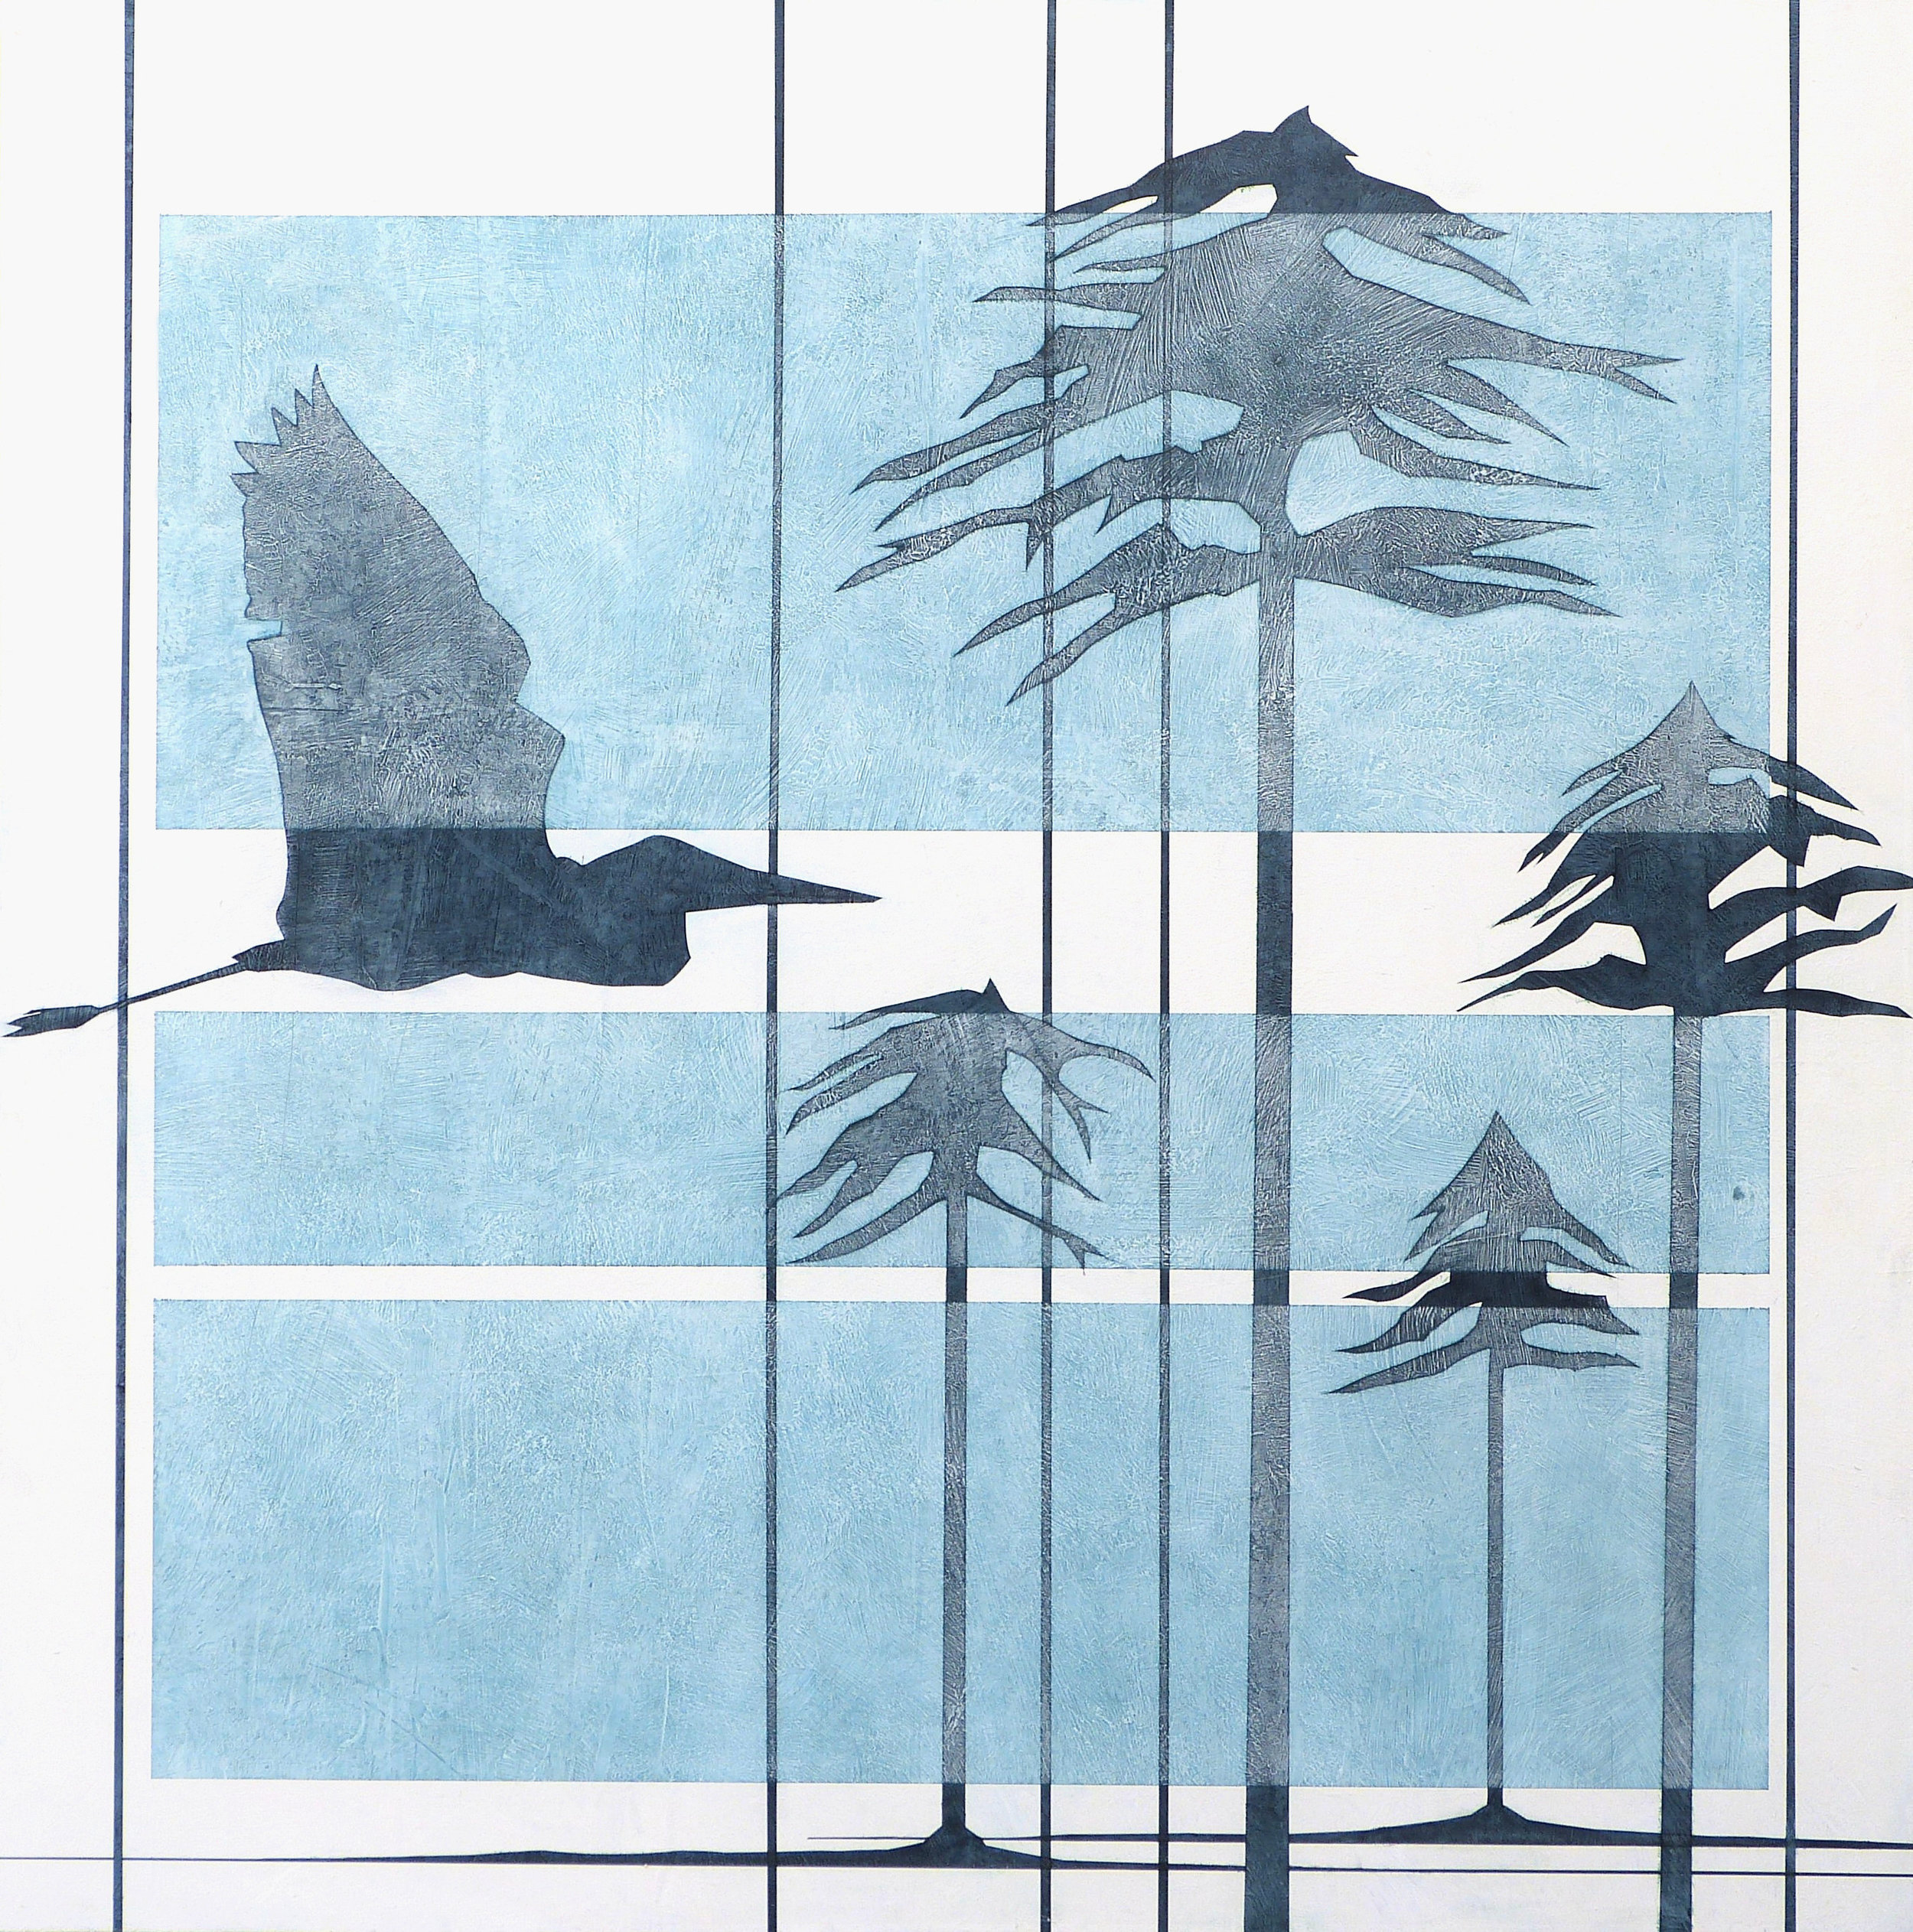 HERON PINES - Arrow FlightHeron hunterNature's fates mergeInitiating a transmutation in the collective..The dart in this shape-shifting Wild-woodThe story of the landscape is made